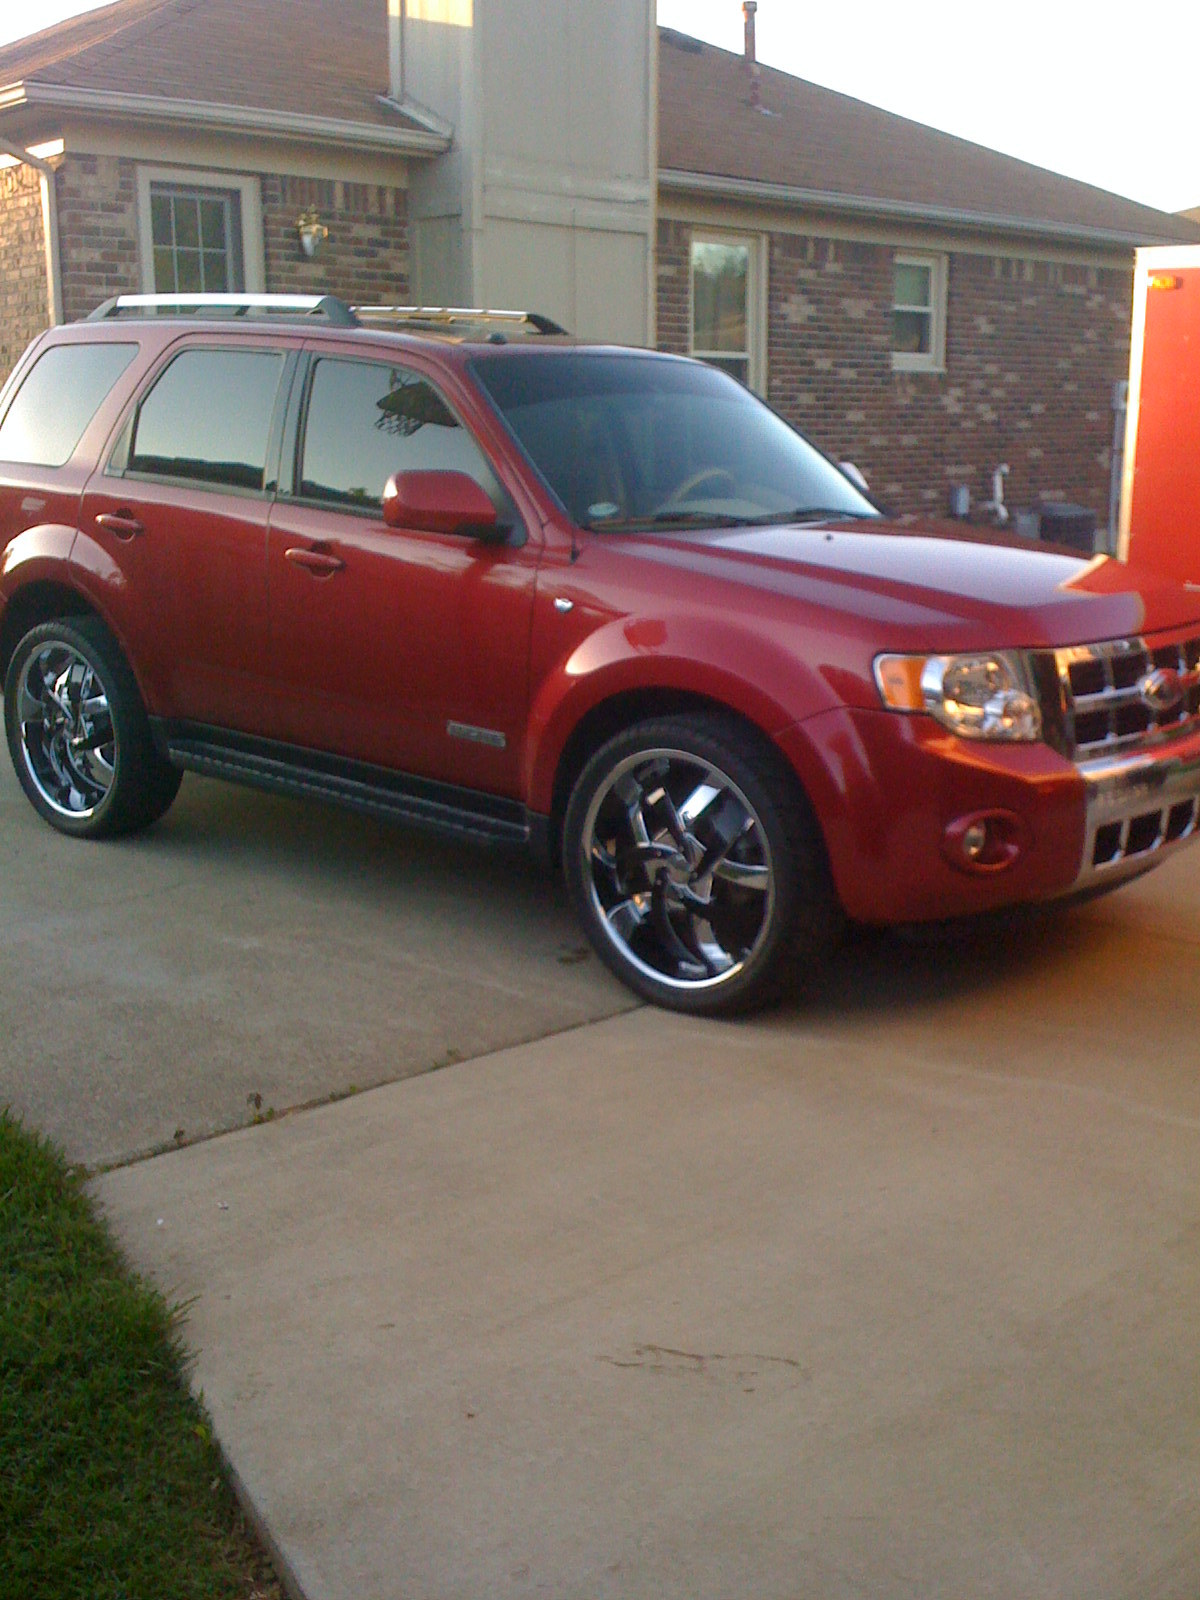 Ford Louisville Ky >> SymptomMusicKY 2008 Ford Escape Specs, Photos, Modification Info at CarDomain